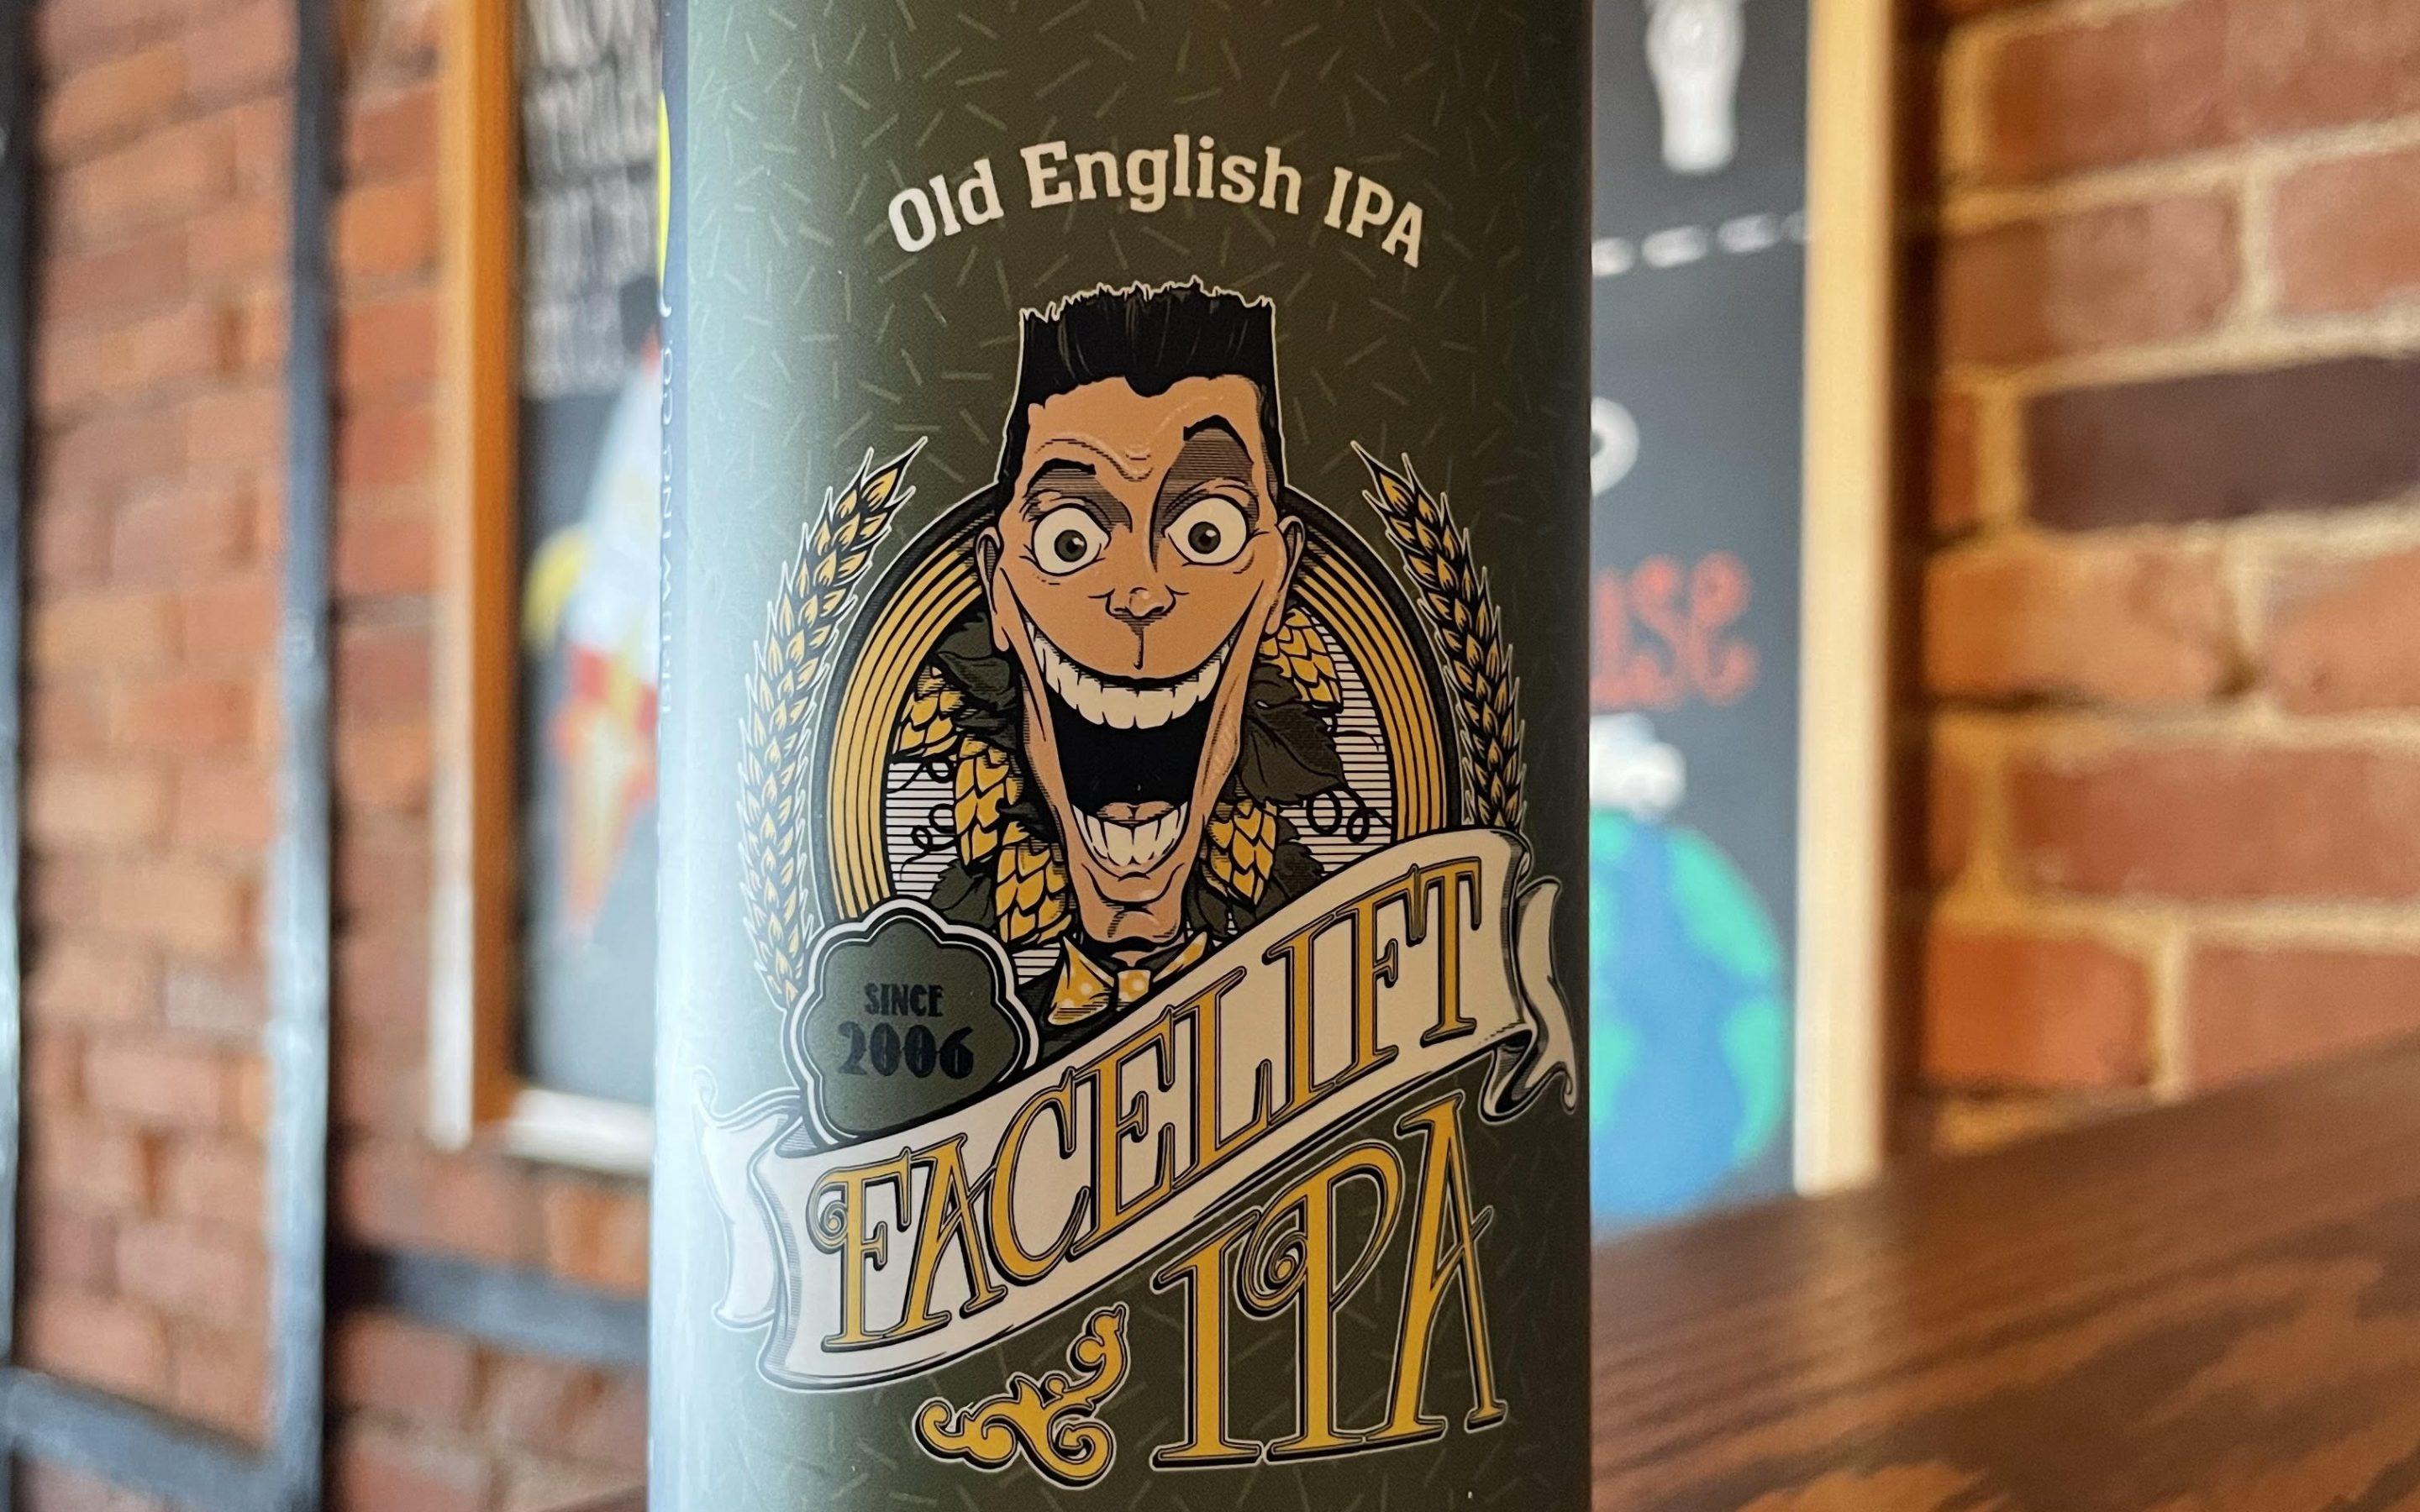 Facelift Old English IPA